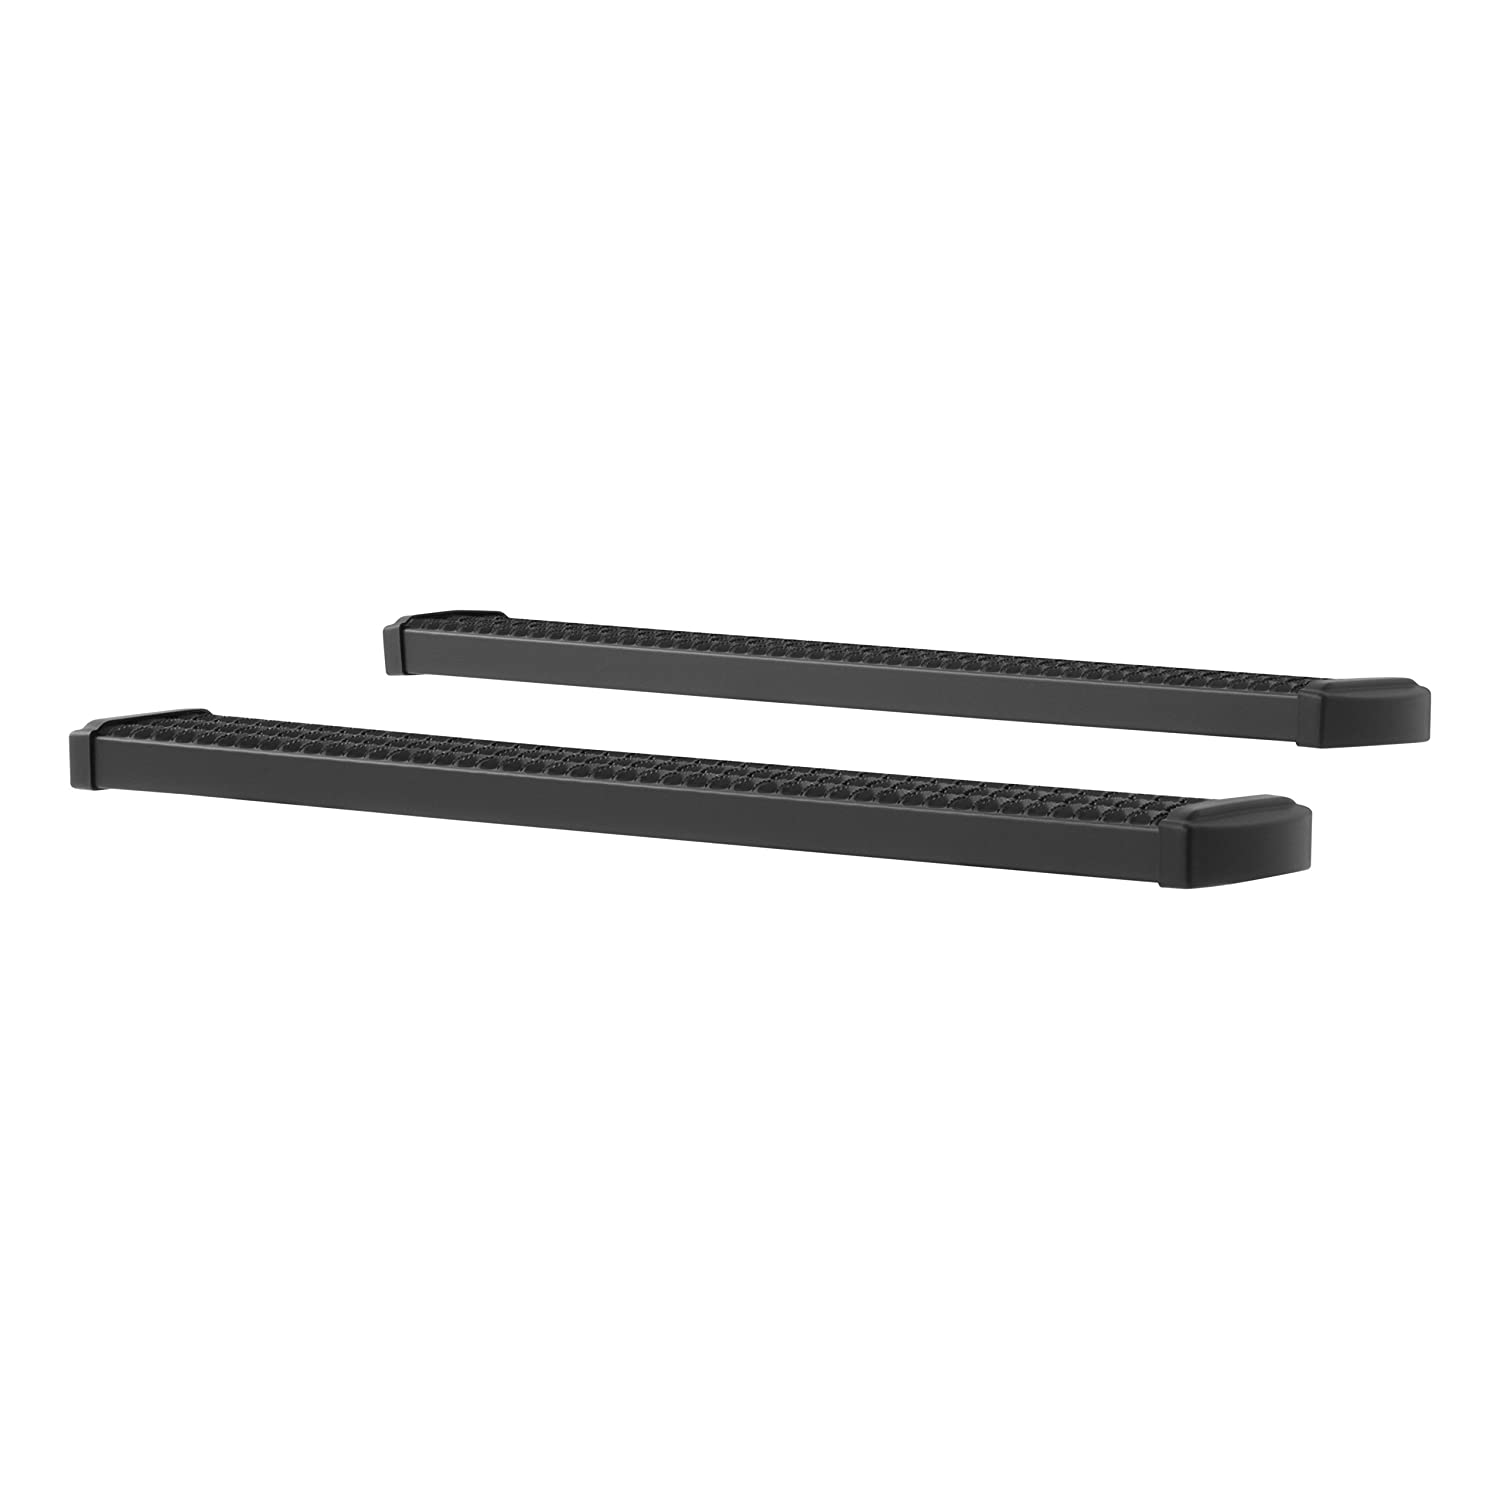 F-550 Super Duty F-350 LUVERNE 415054-409921 Grip Step Black Aluminum 54-Inch Truck Running Boards for Select Ford F-250 F-450